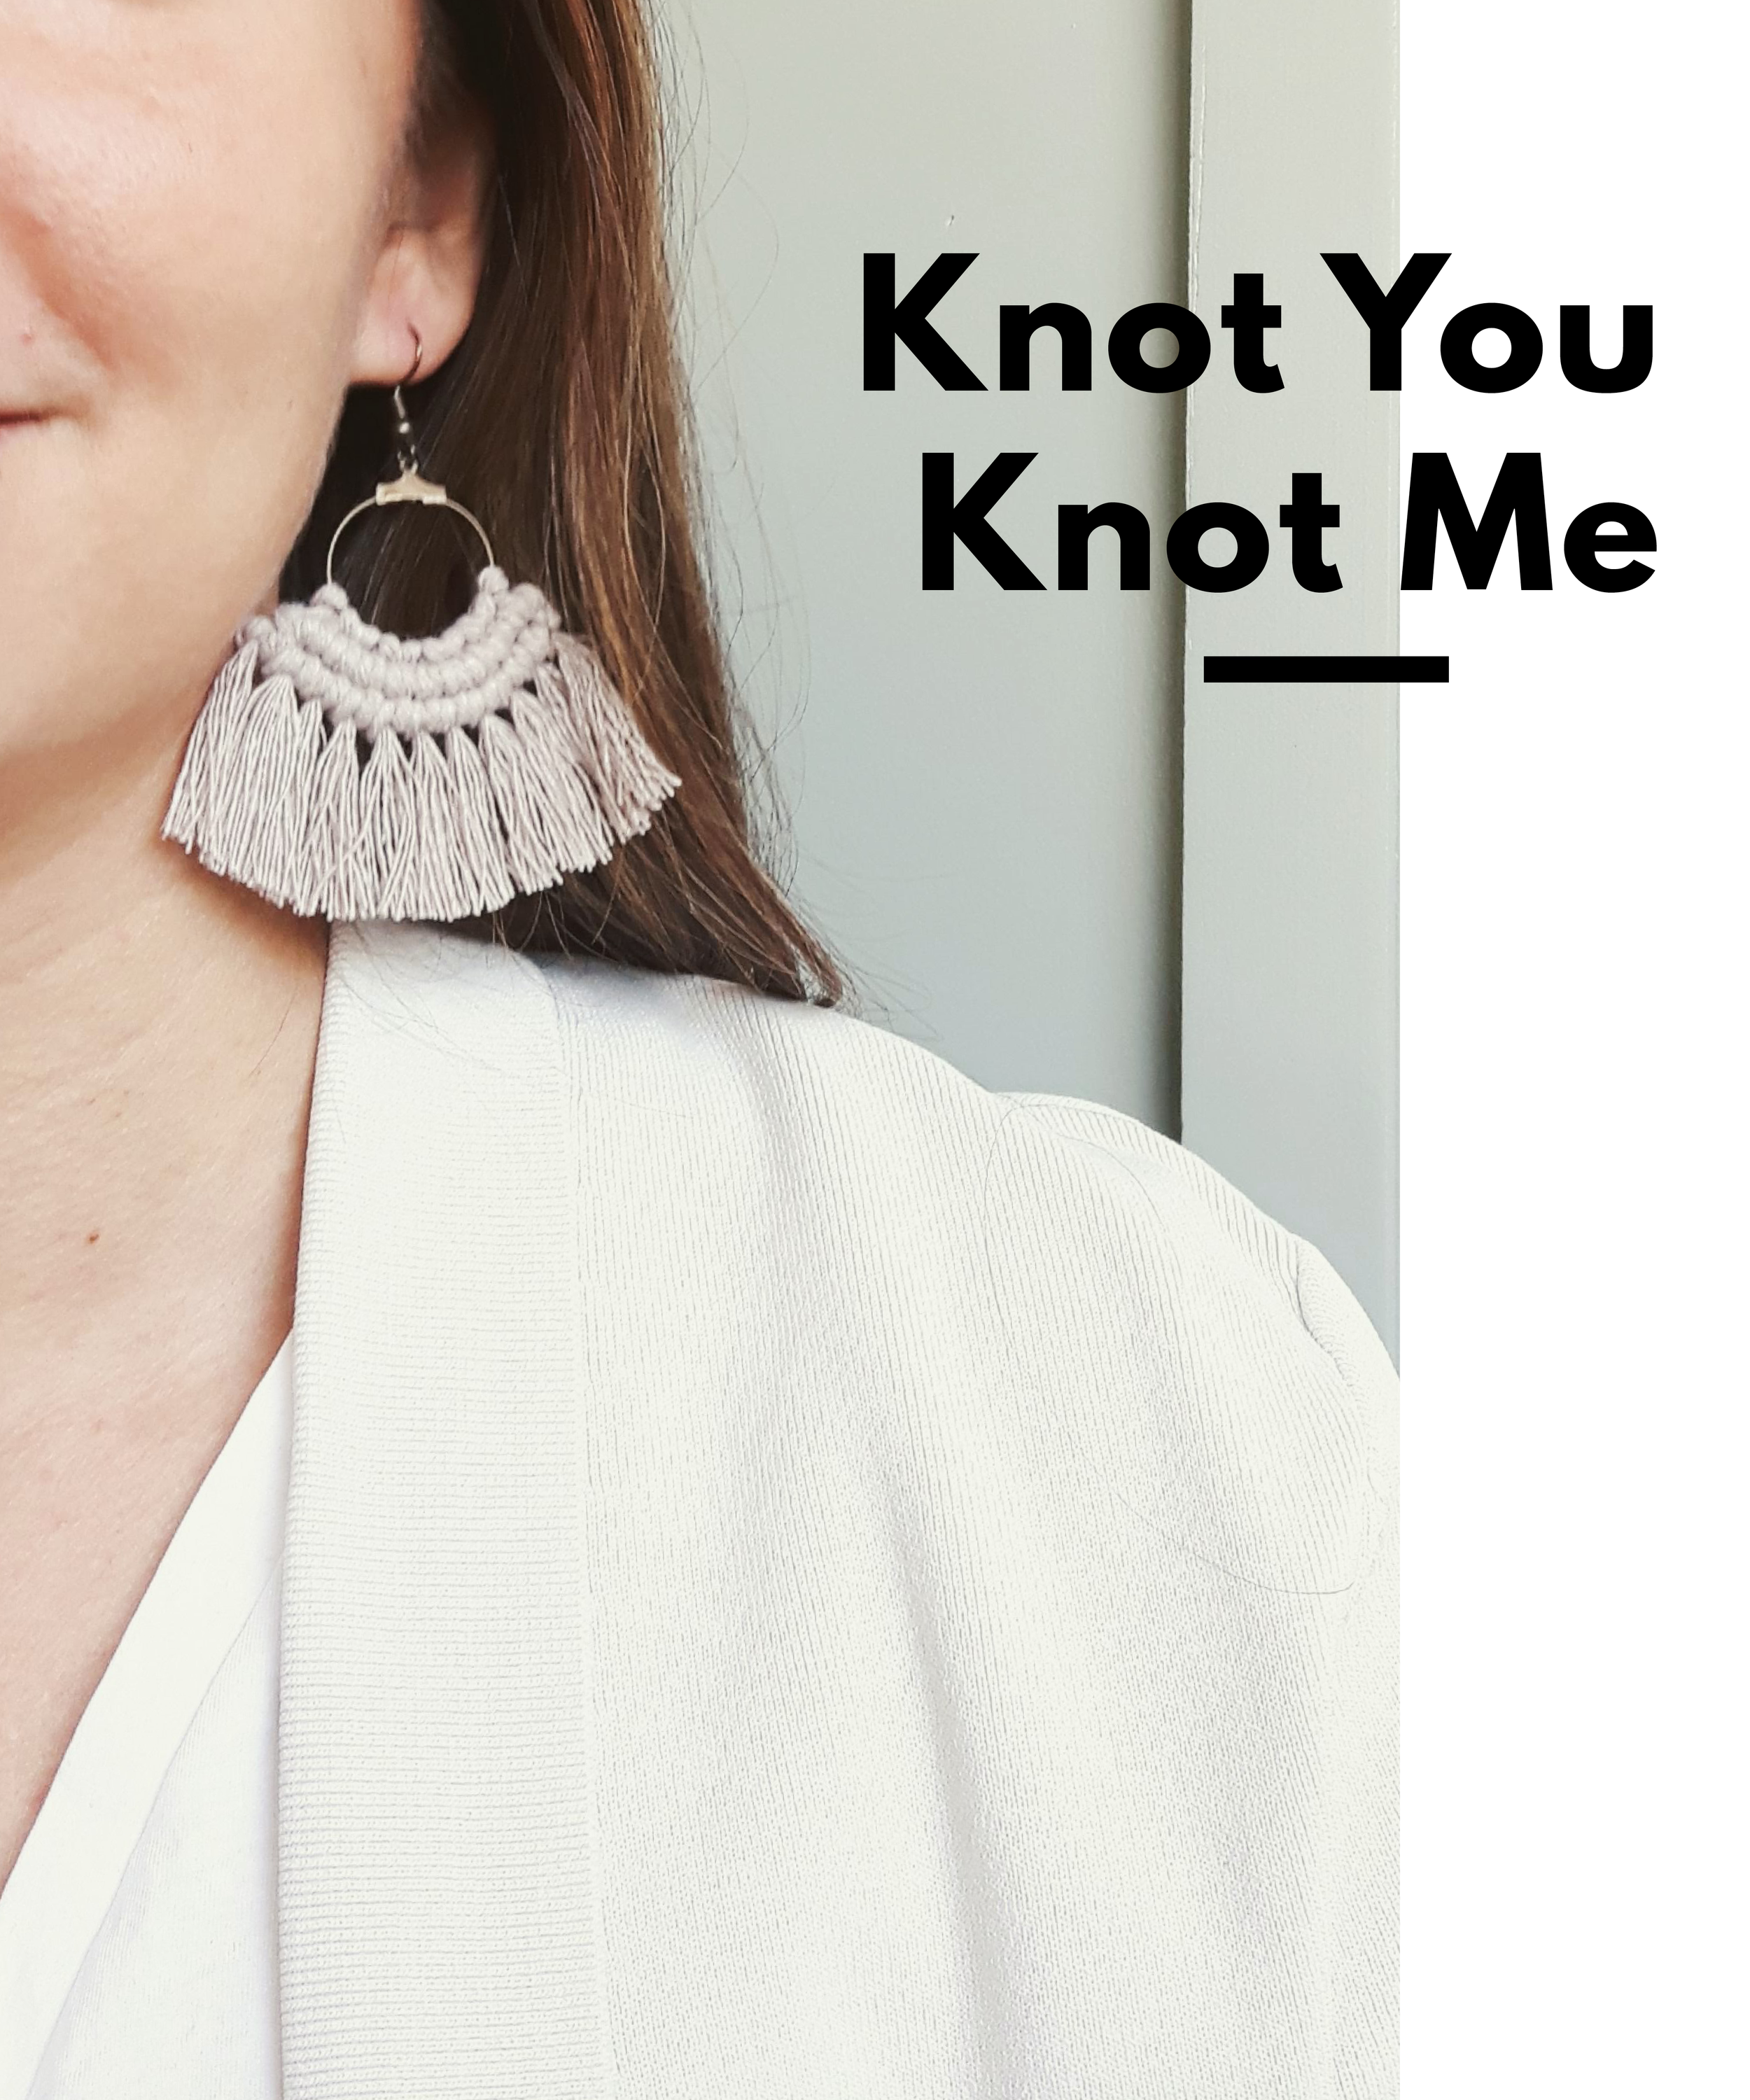 Shop Knot You Knot Me at the One of a Kind Show, March 27 - 31